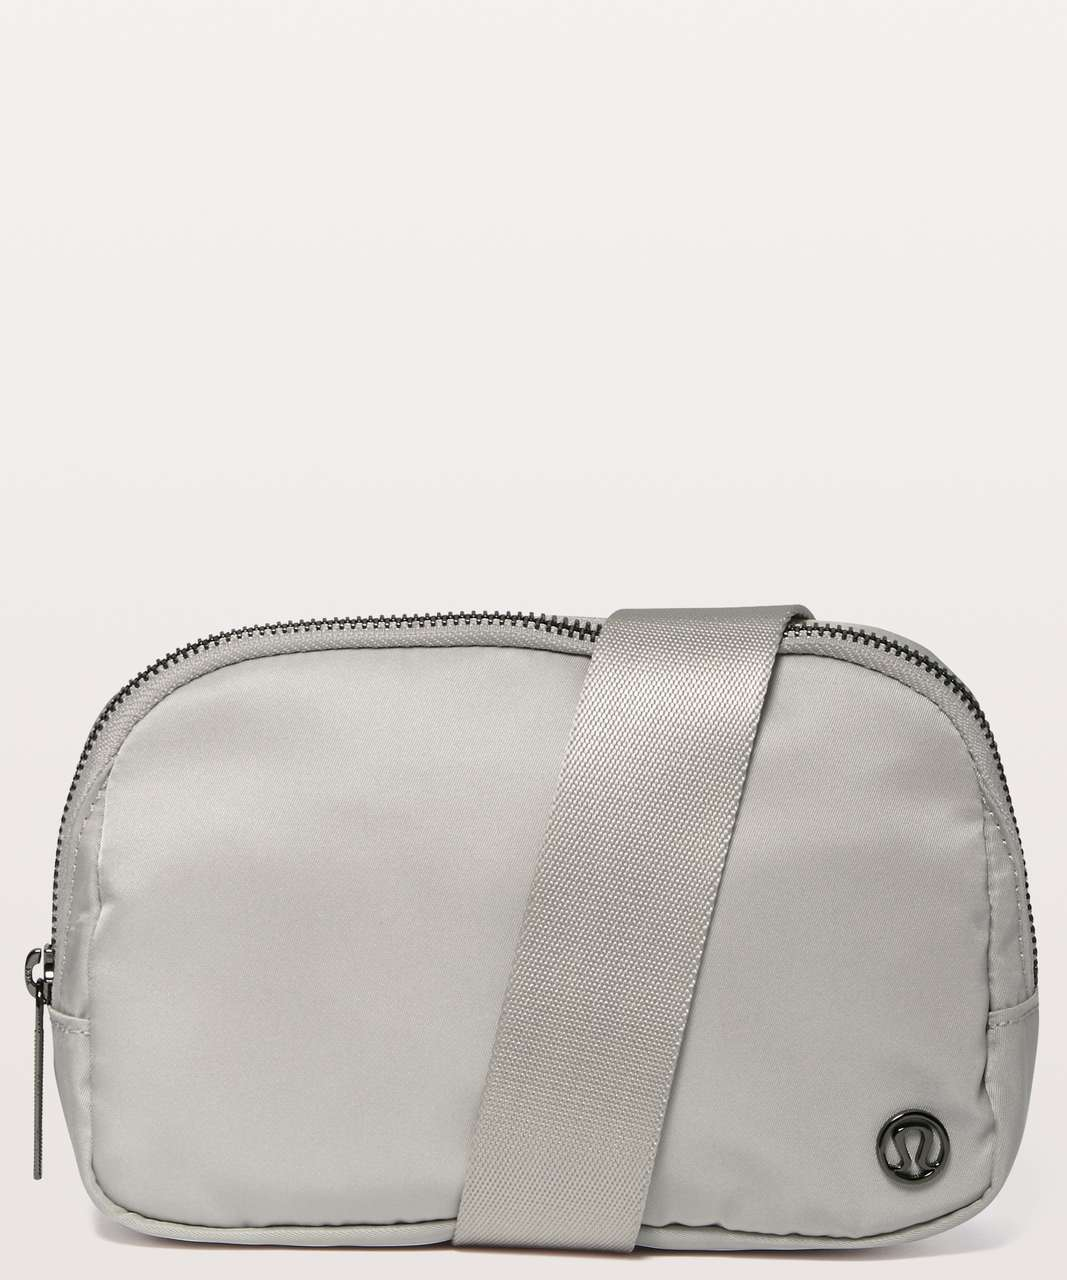 Lululemon Everywhere Belt Bag *1L - Chrome